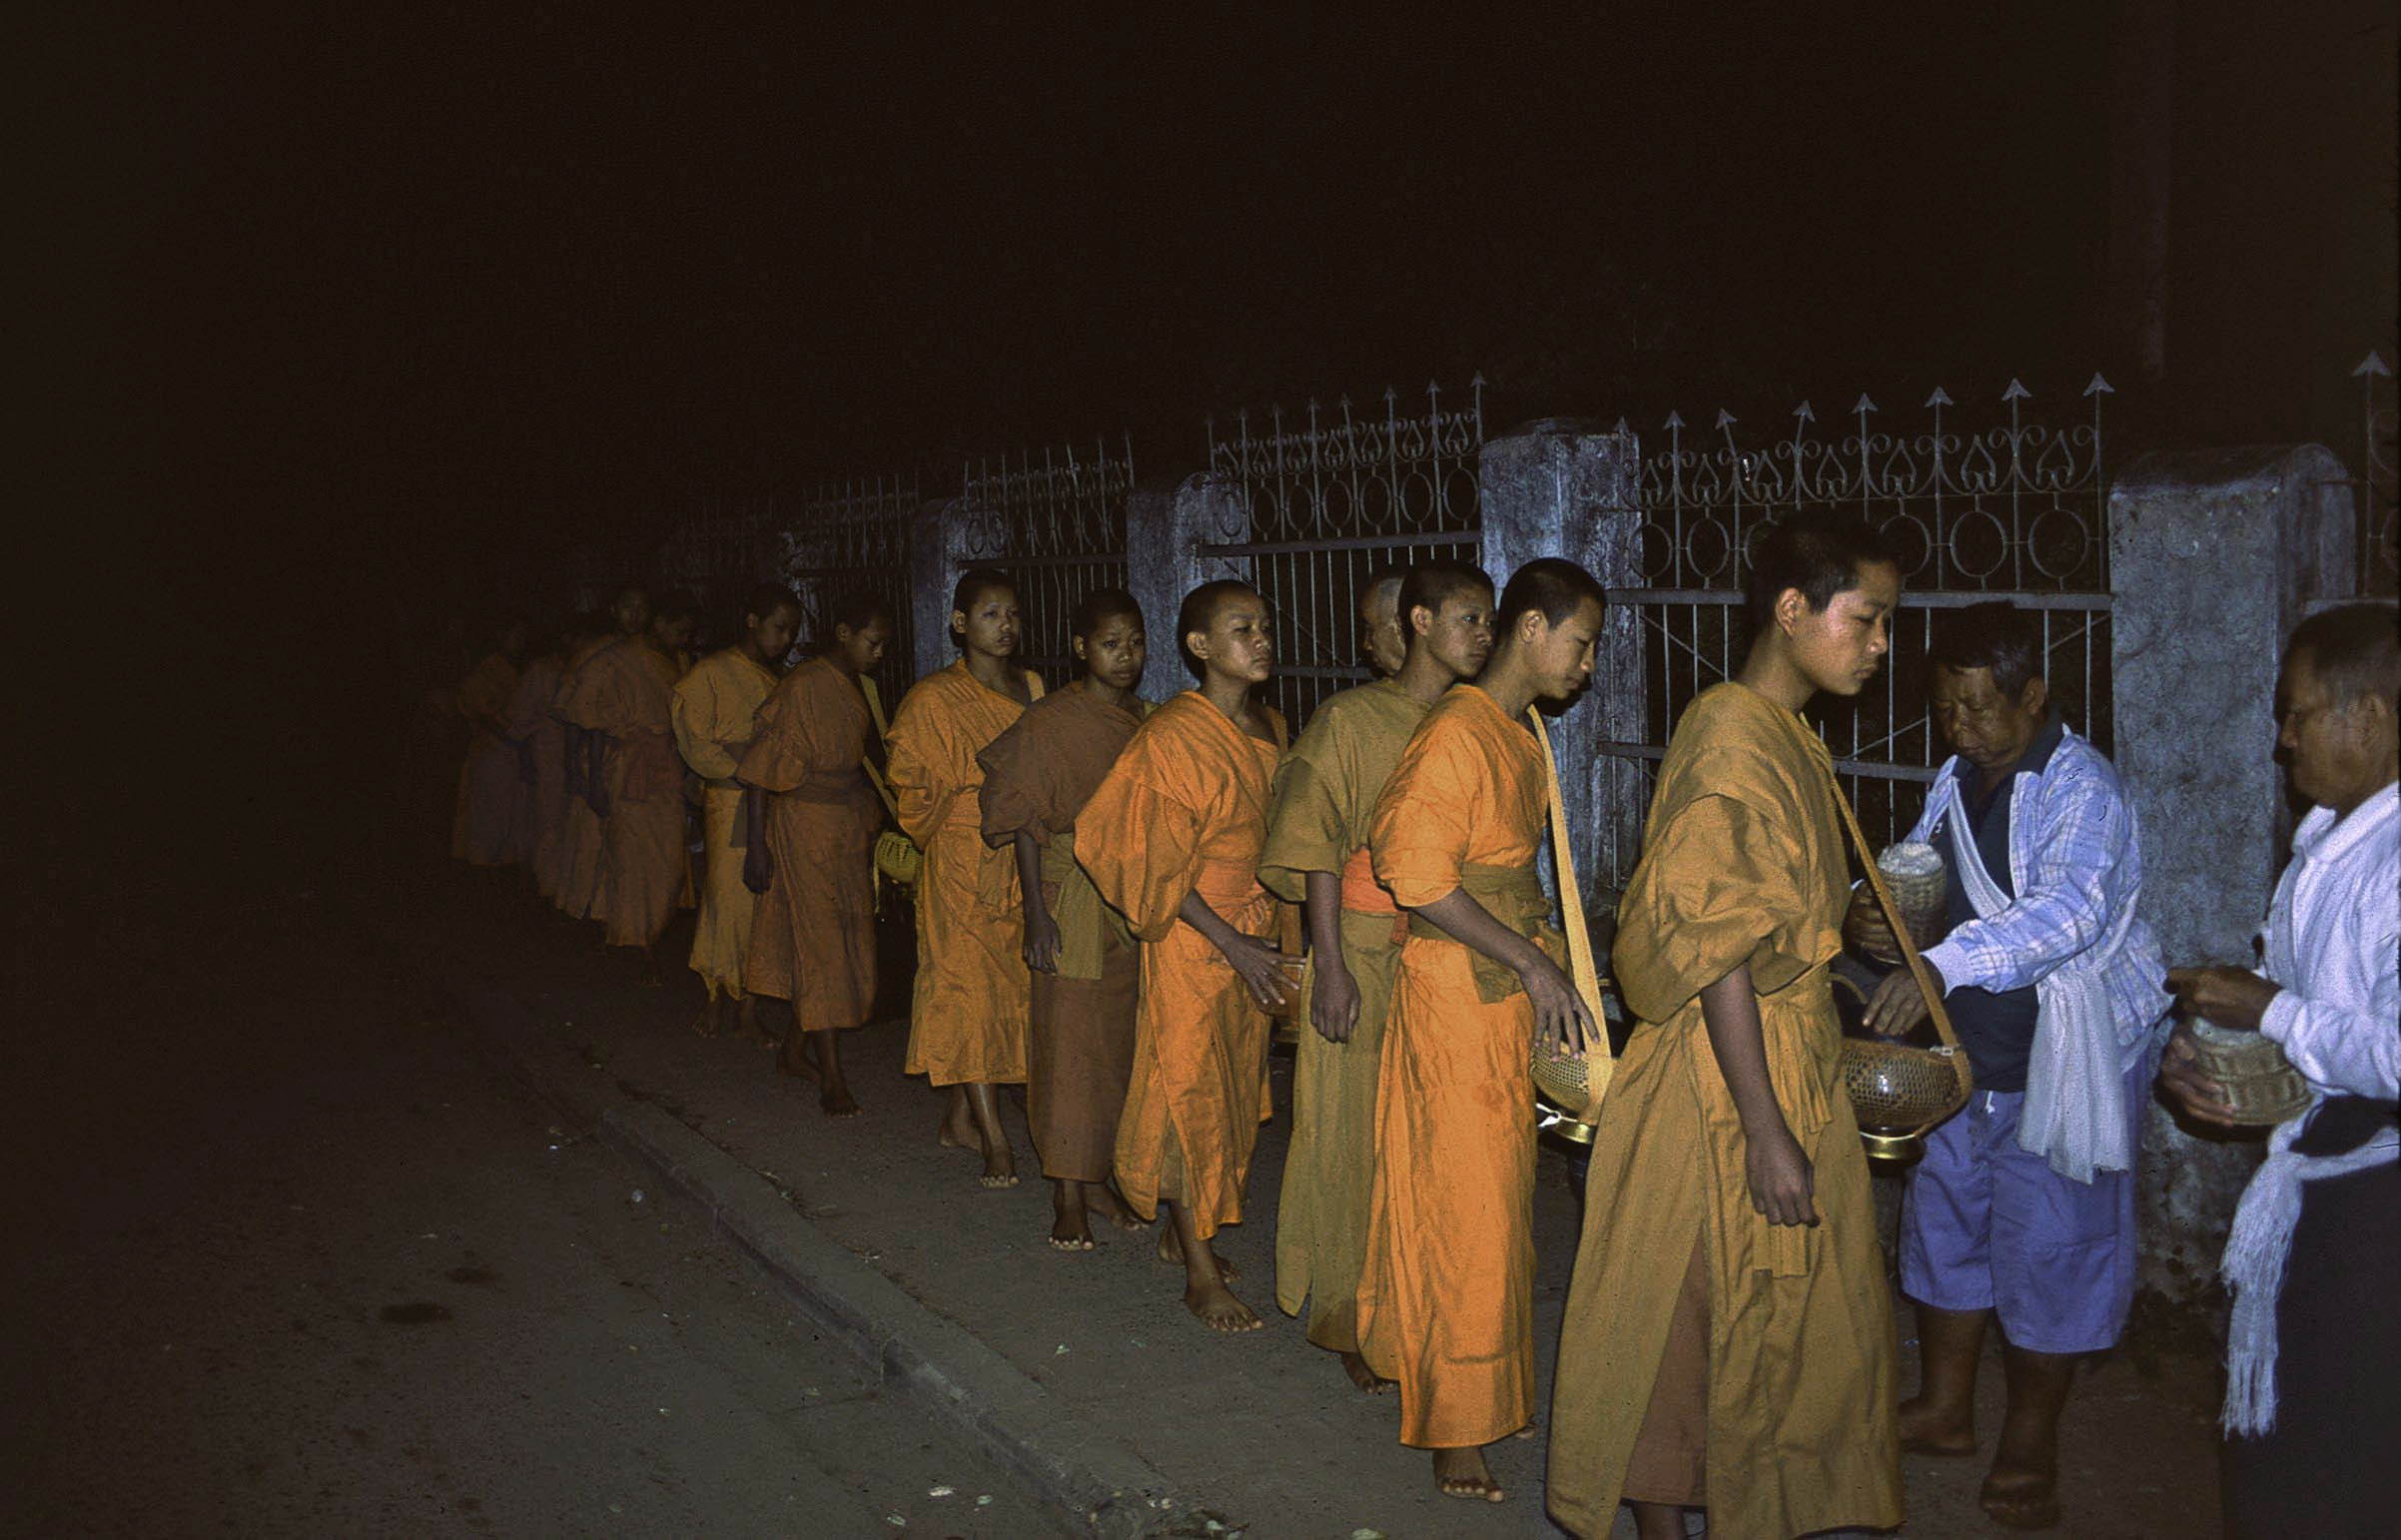 Monks Receiving Alms, Luang Prabang